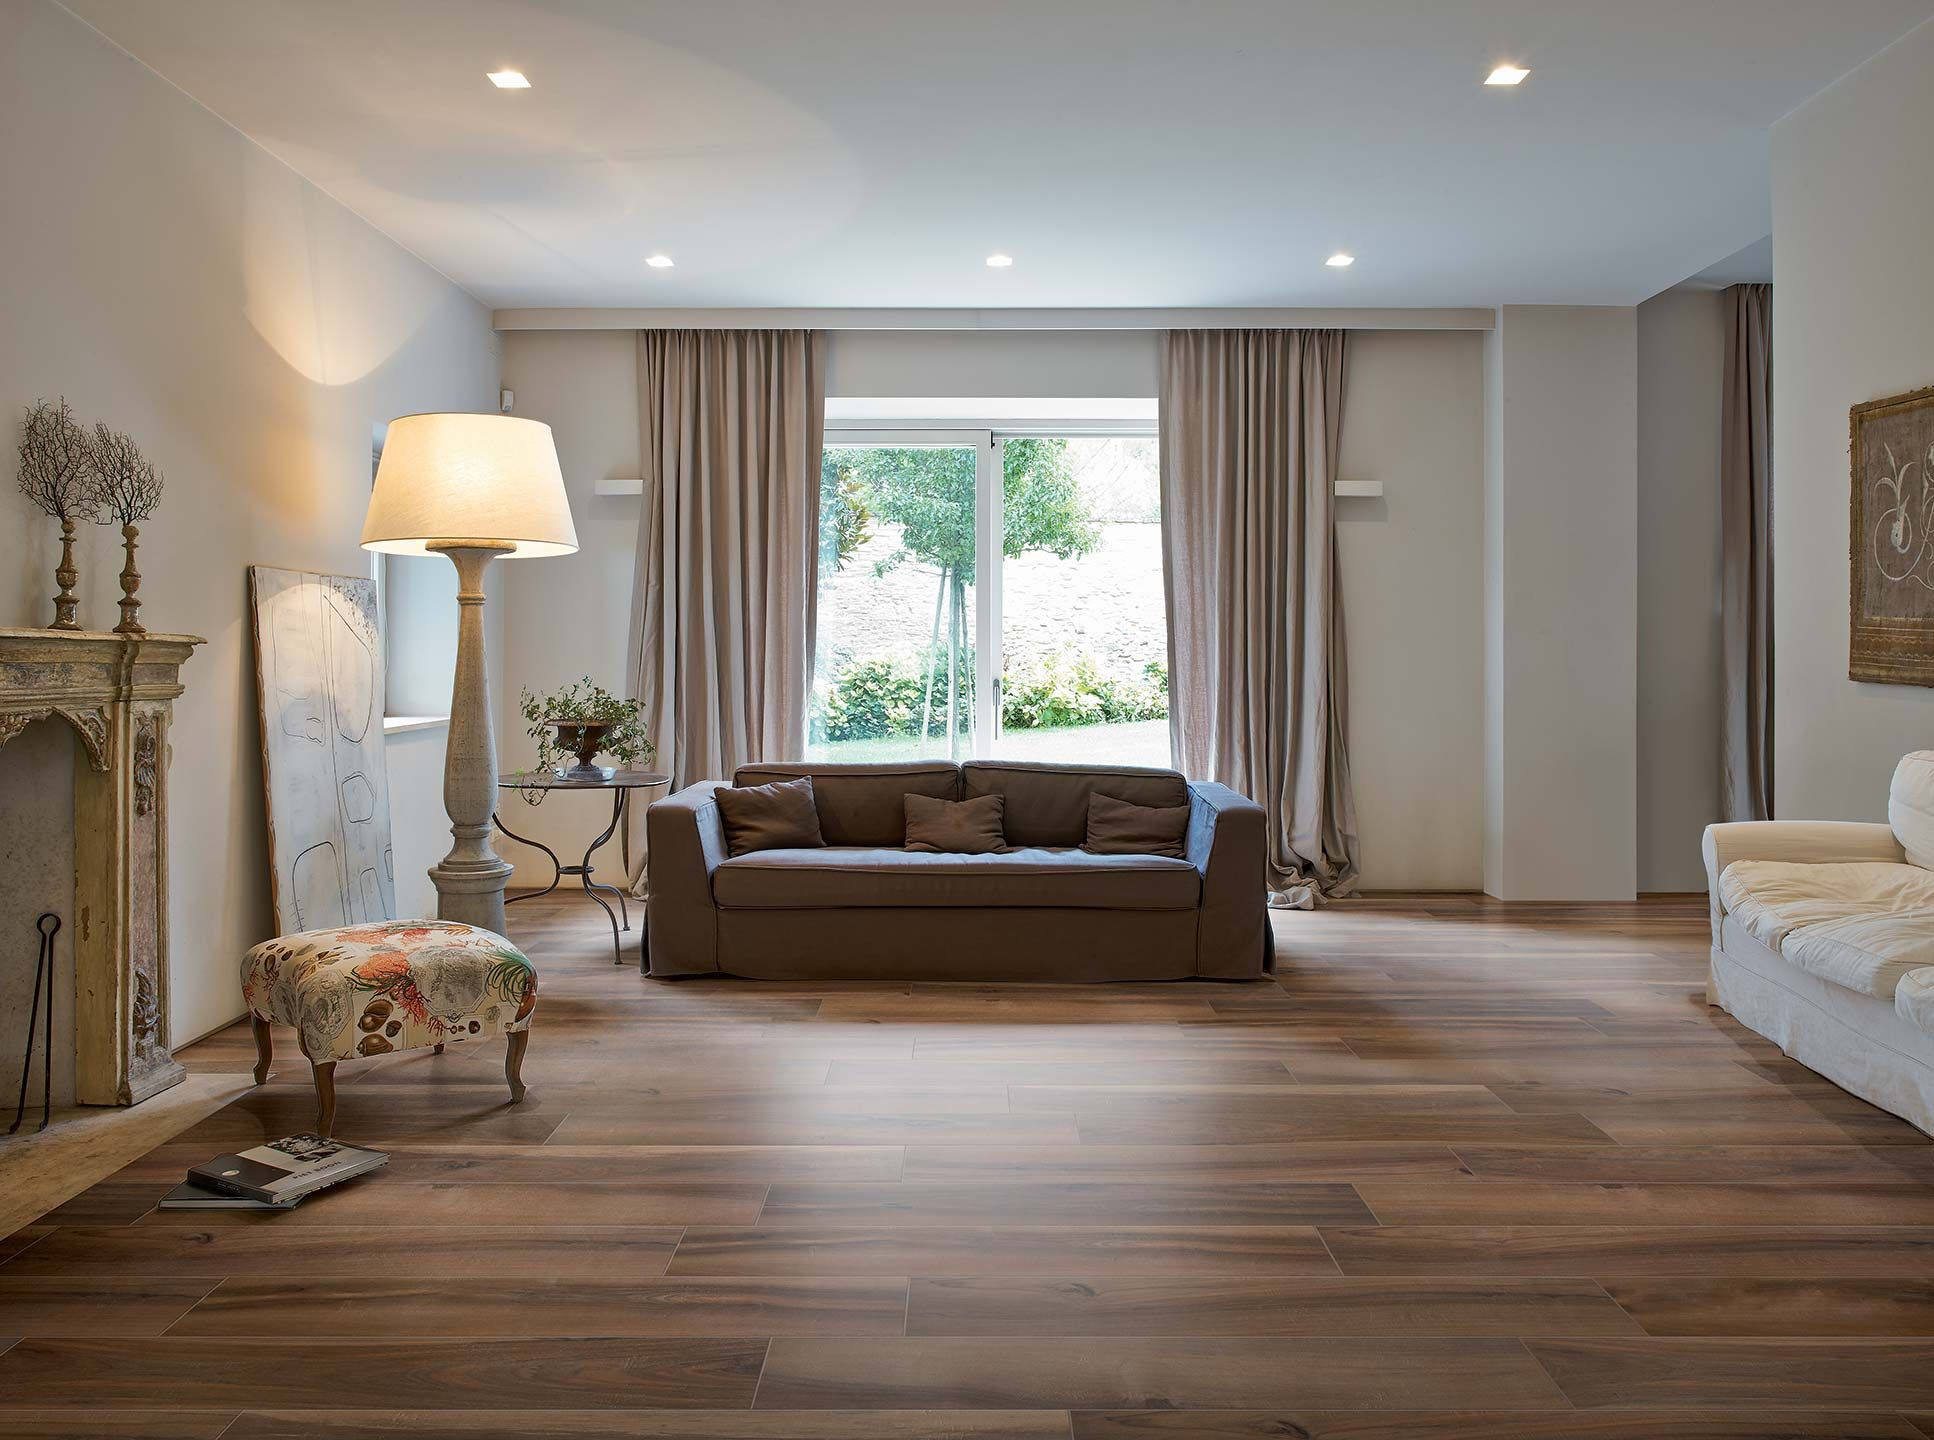 Stained wood florim usa jrlapok pinterest woods sita tile for a rustic living room with a wood look tile planks and trend wood look ceramic tile by arley wholesale albany tile carpet rug dailygadgetfo Choice Image